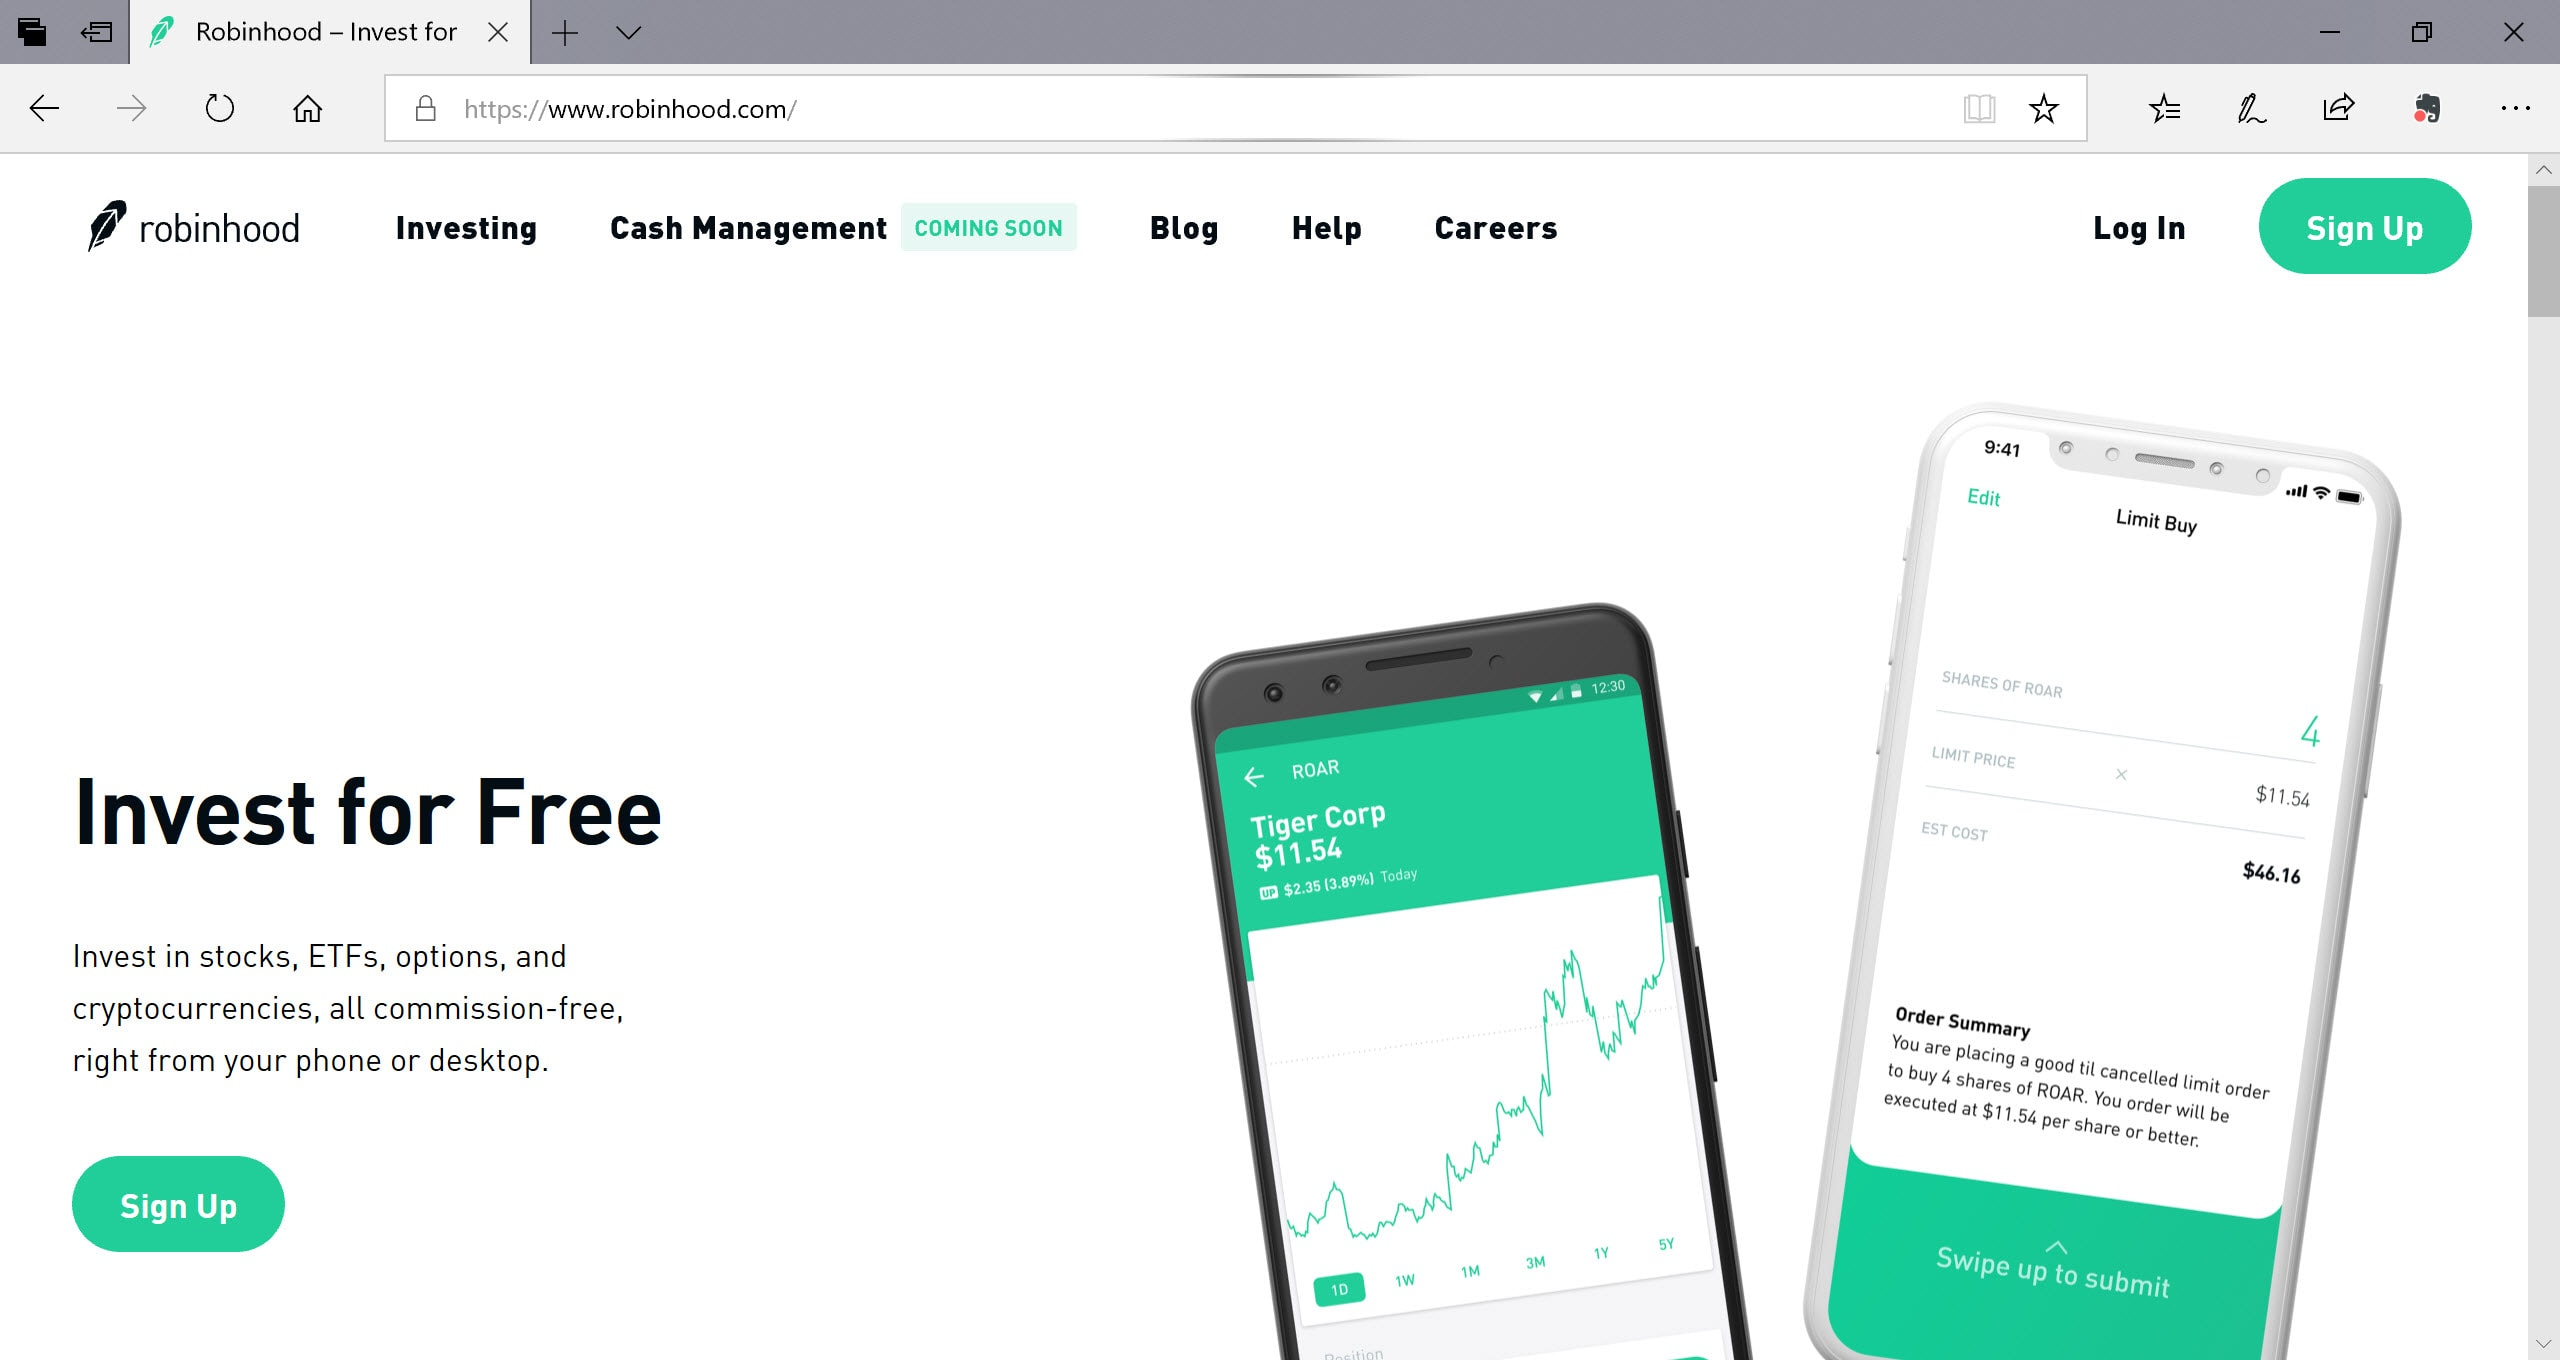 Measurements Robinhood Commission-Free Investing